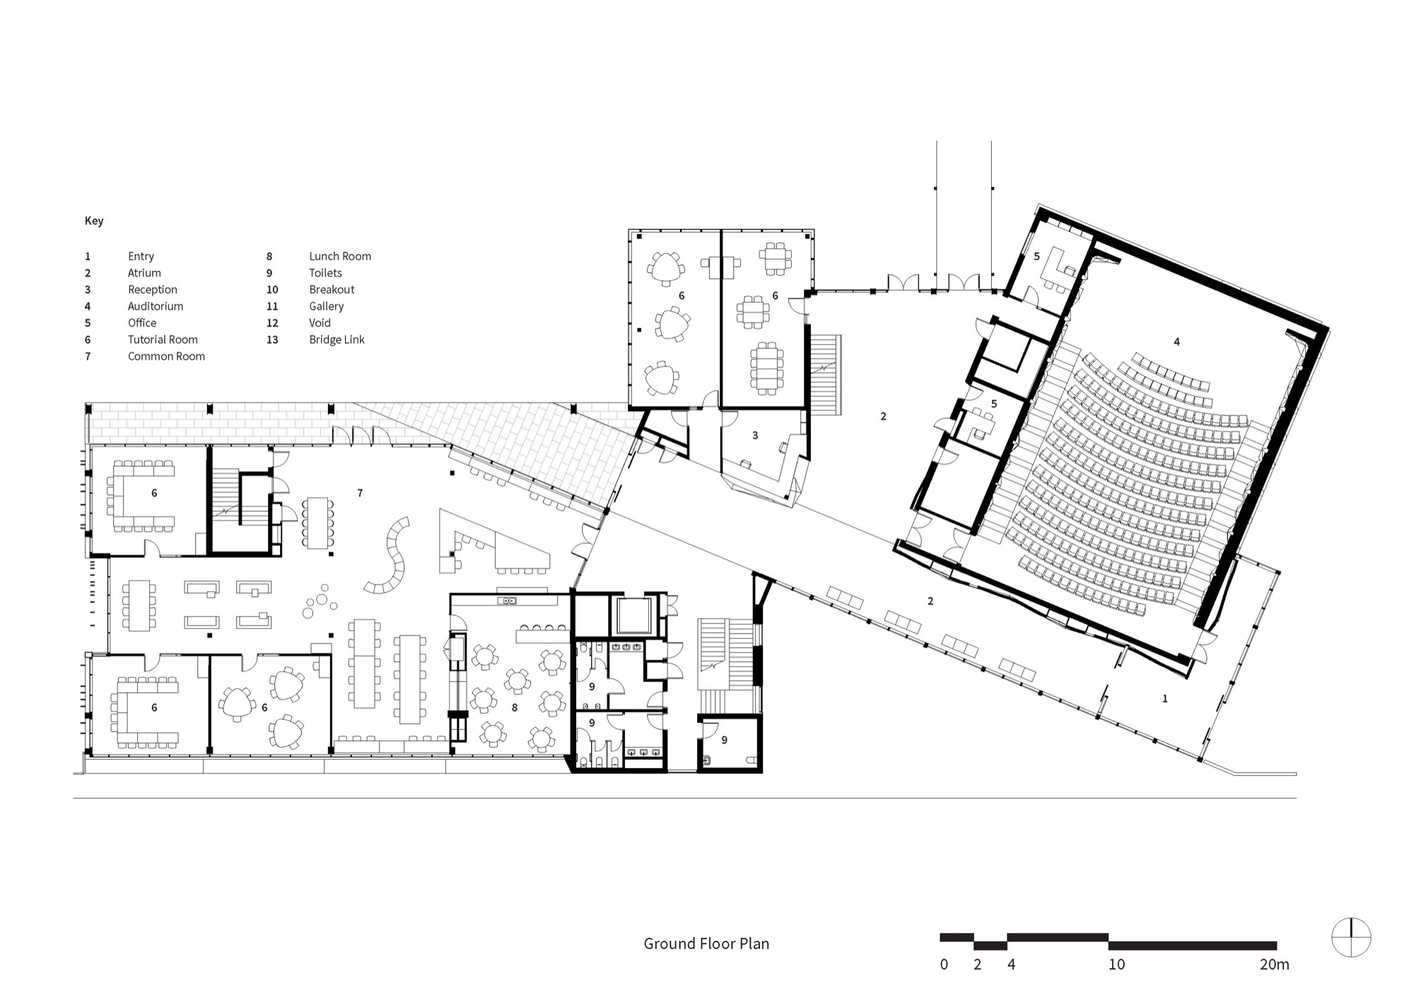 College Building Drawing At Getdrawings